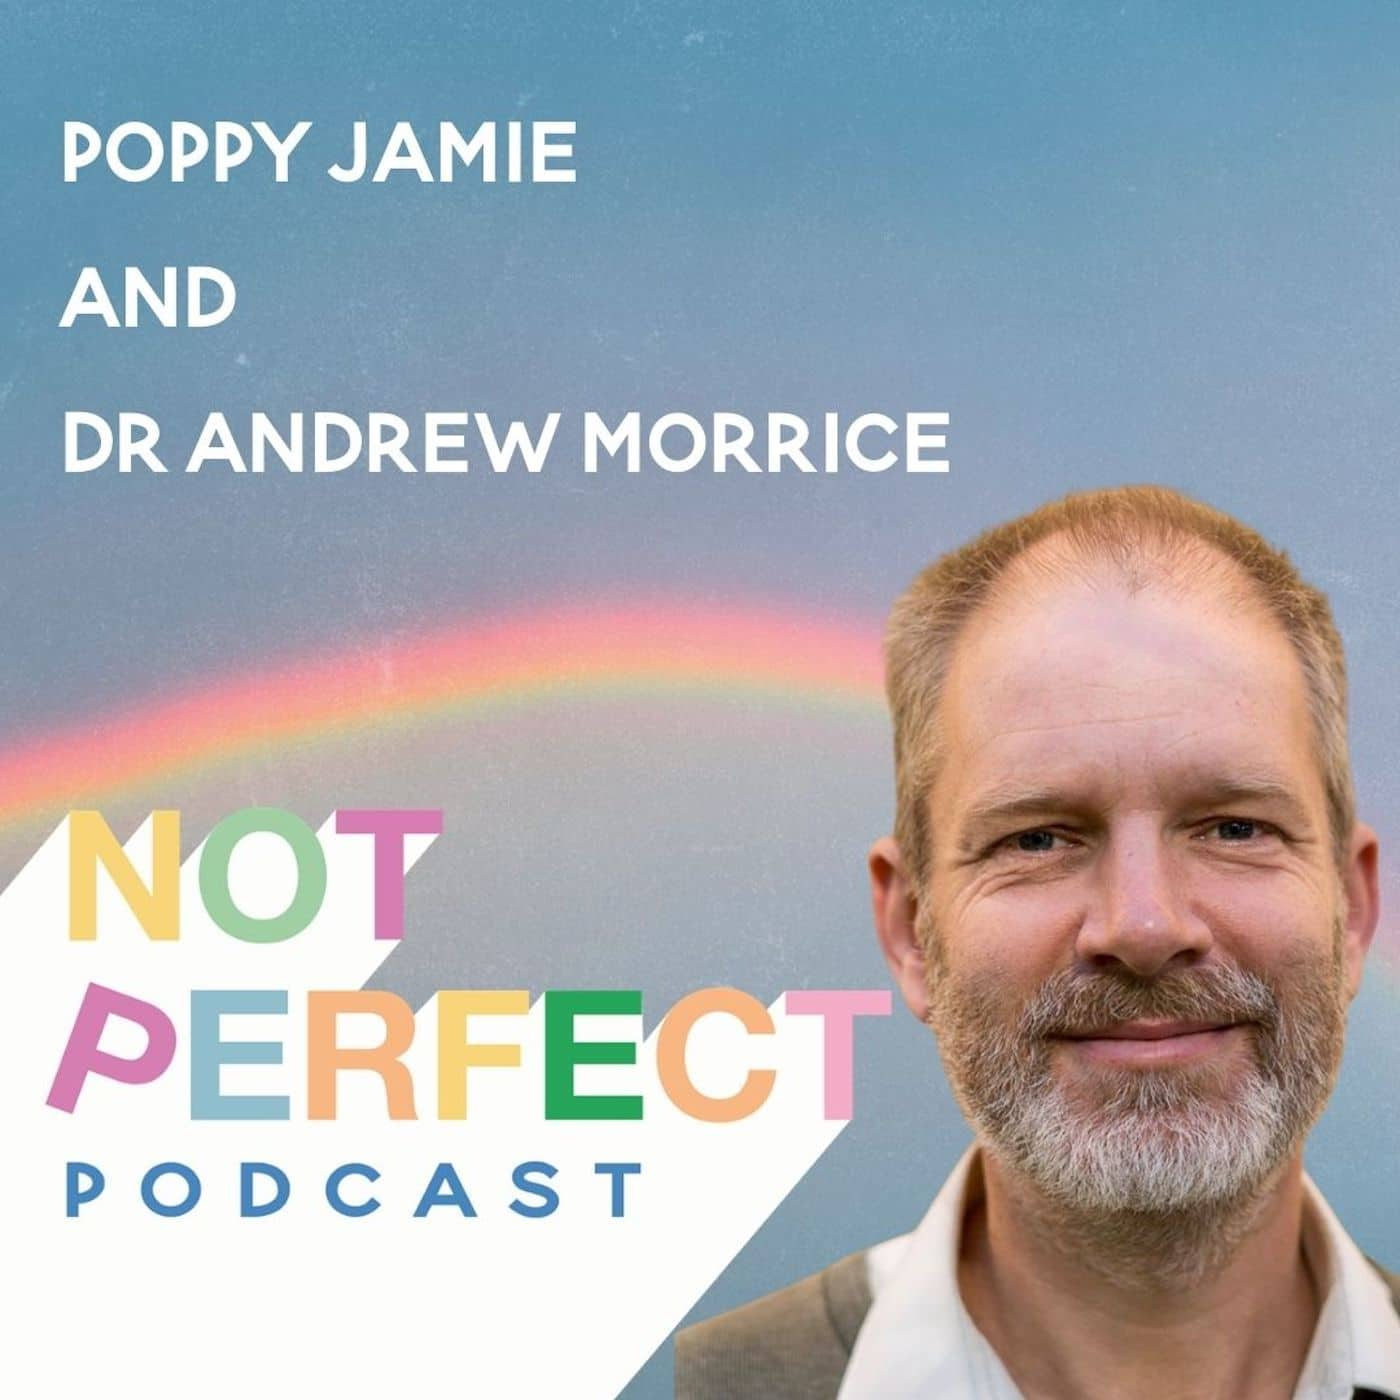 Are your human needs being met? Not Perfect Podcast with Poppy Jamie